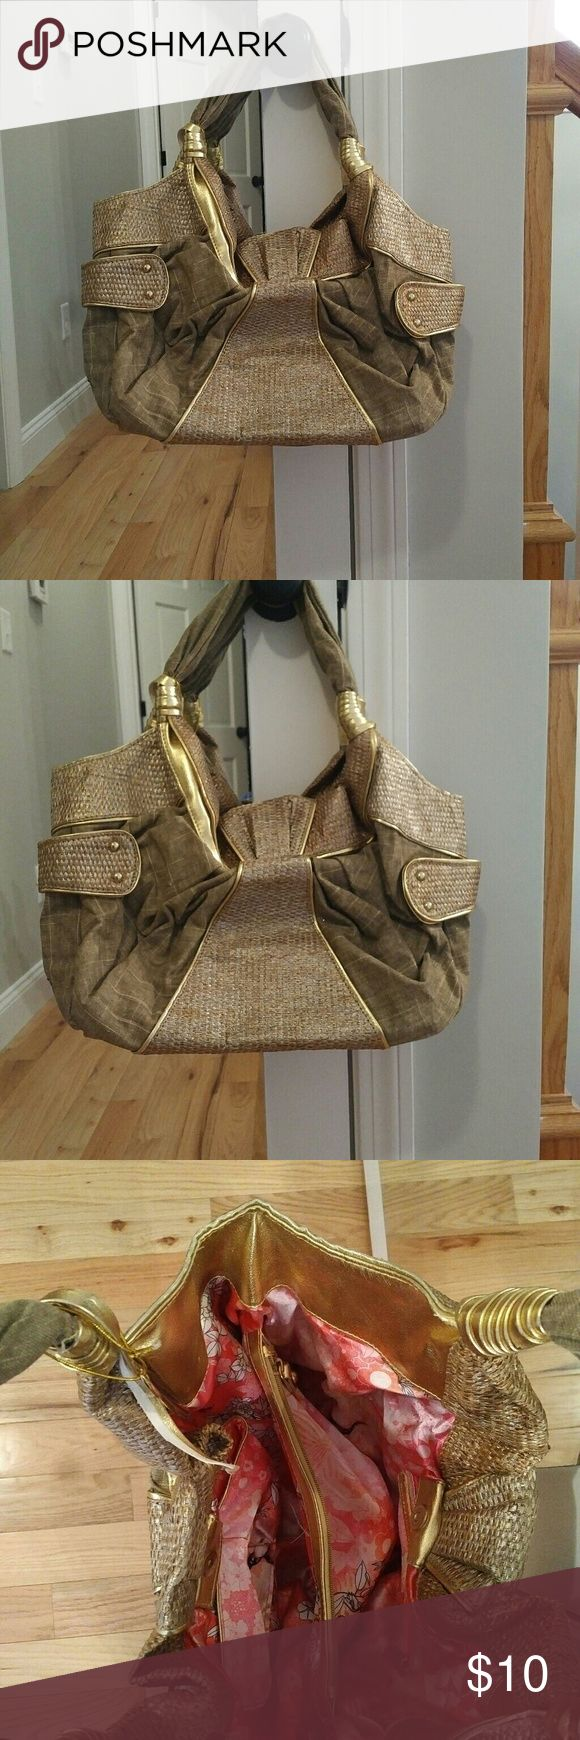 A beige and gold shoulder bag This bag is so pretty. It has a great amount of space and is very light weight. There is a small problem with one of the gold wraps around the handles but it can easily be fixed. Chinese Laundry Bags Shoulder Bags